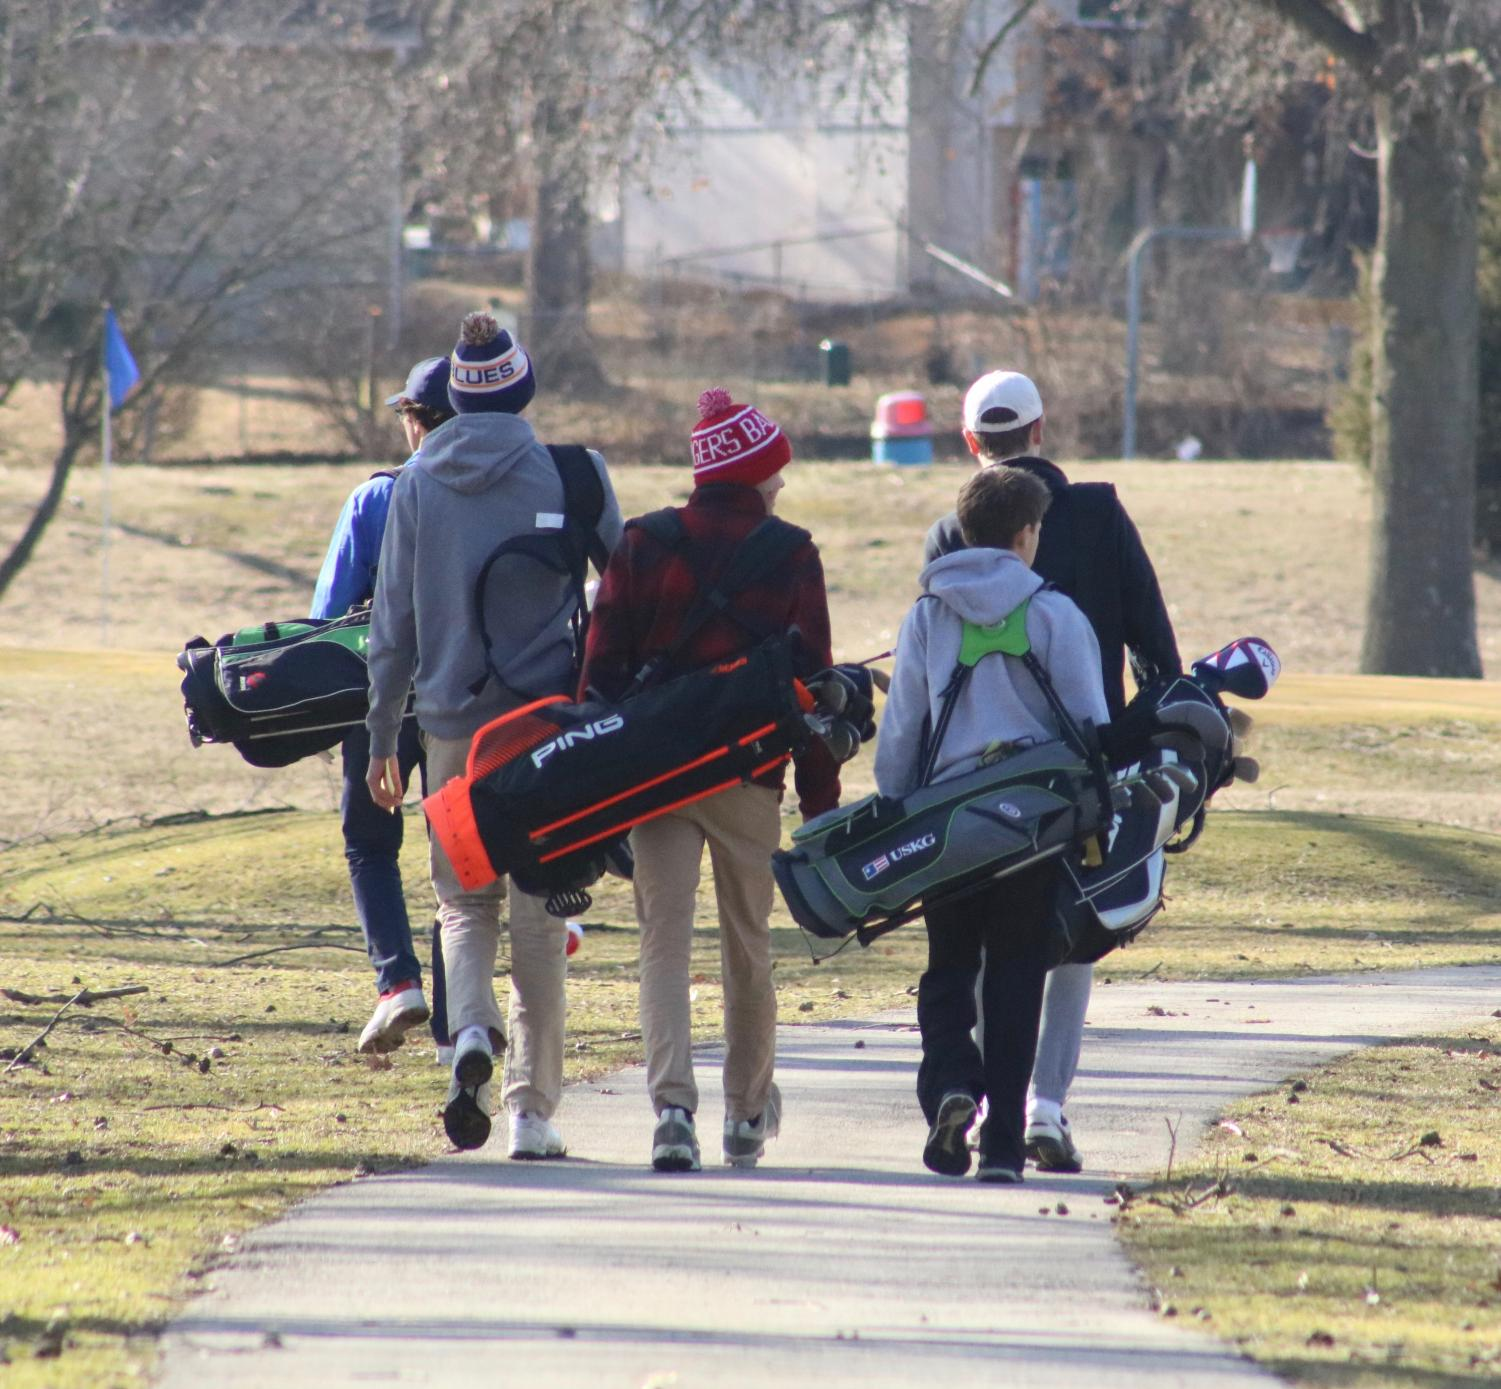 Golfers+walk+down+the+cart+path+to+their+starting+tee.+